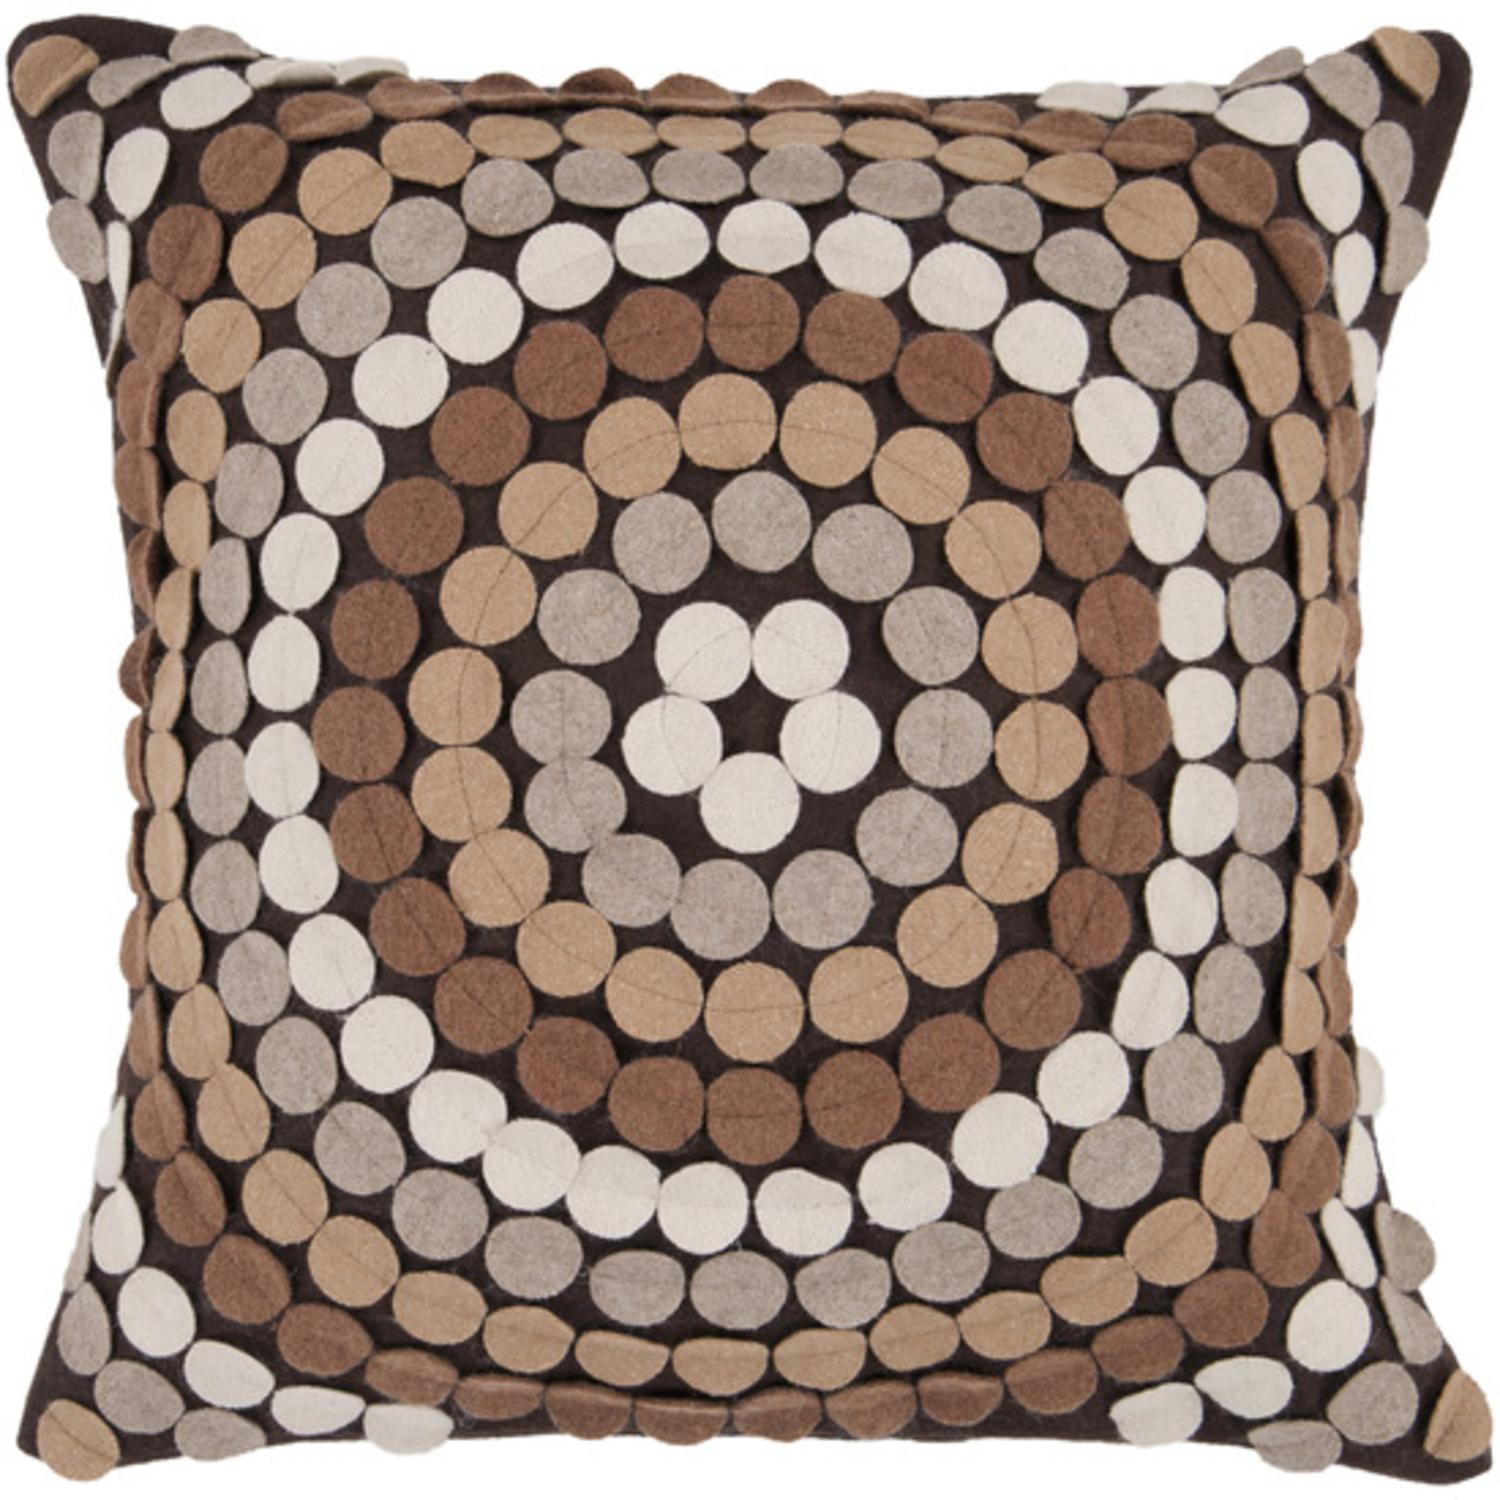 "18"" Espresso Brown Toned Applique Mandala Decorative Down Throw Pillow"